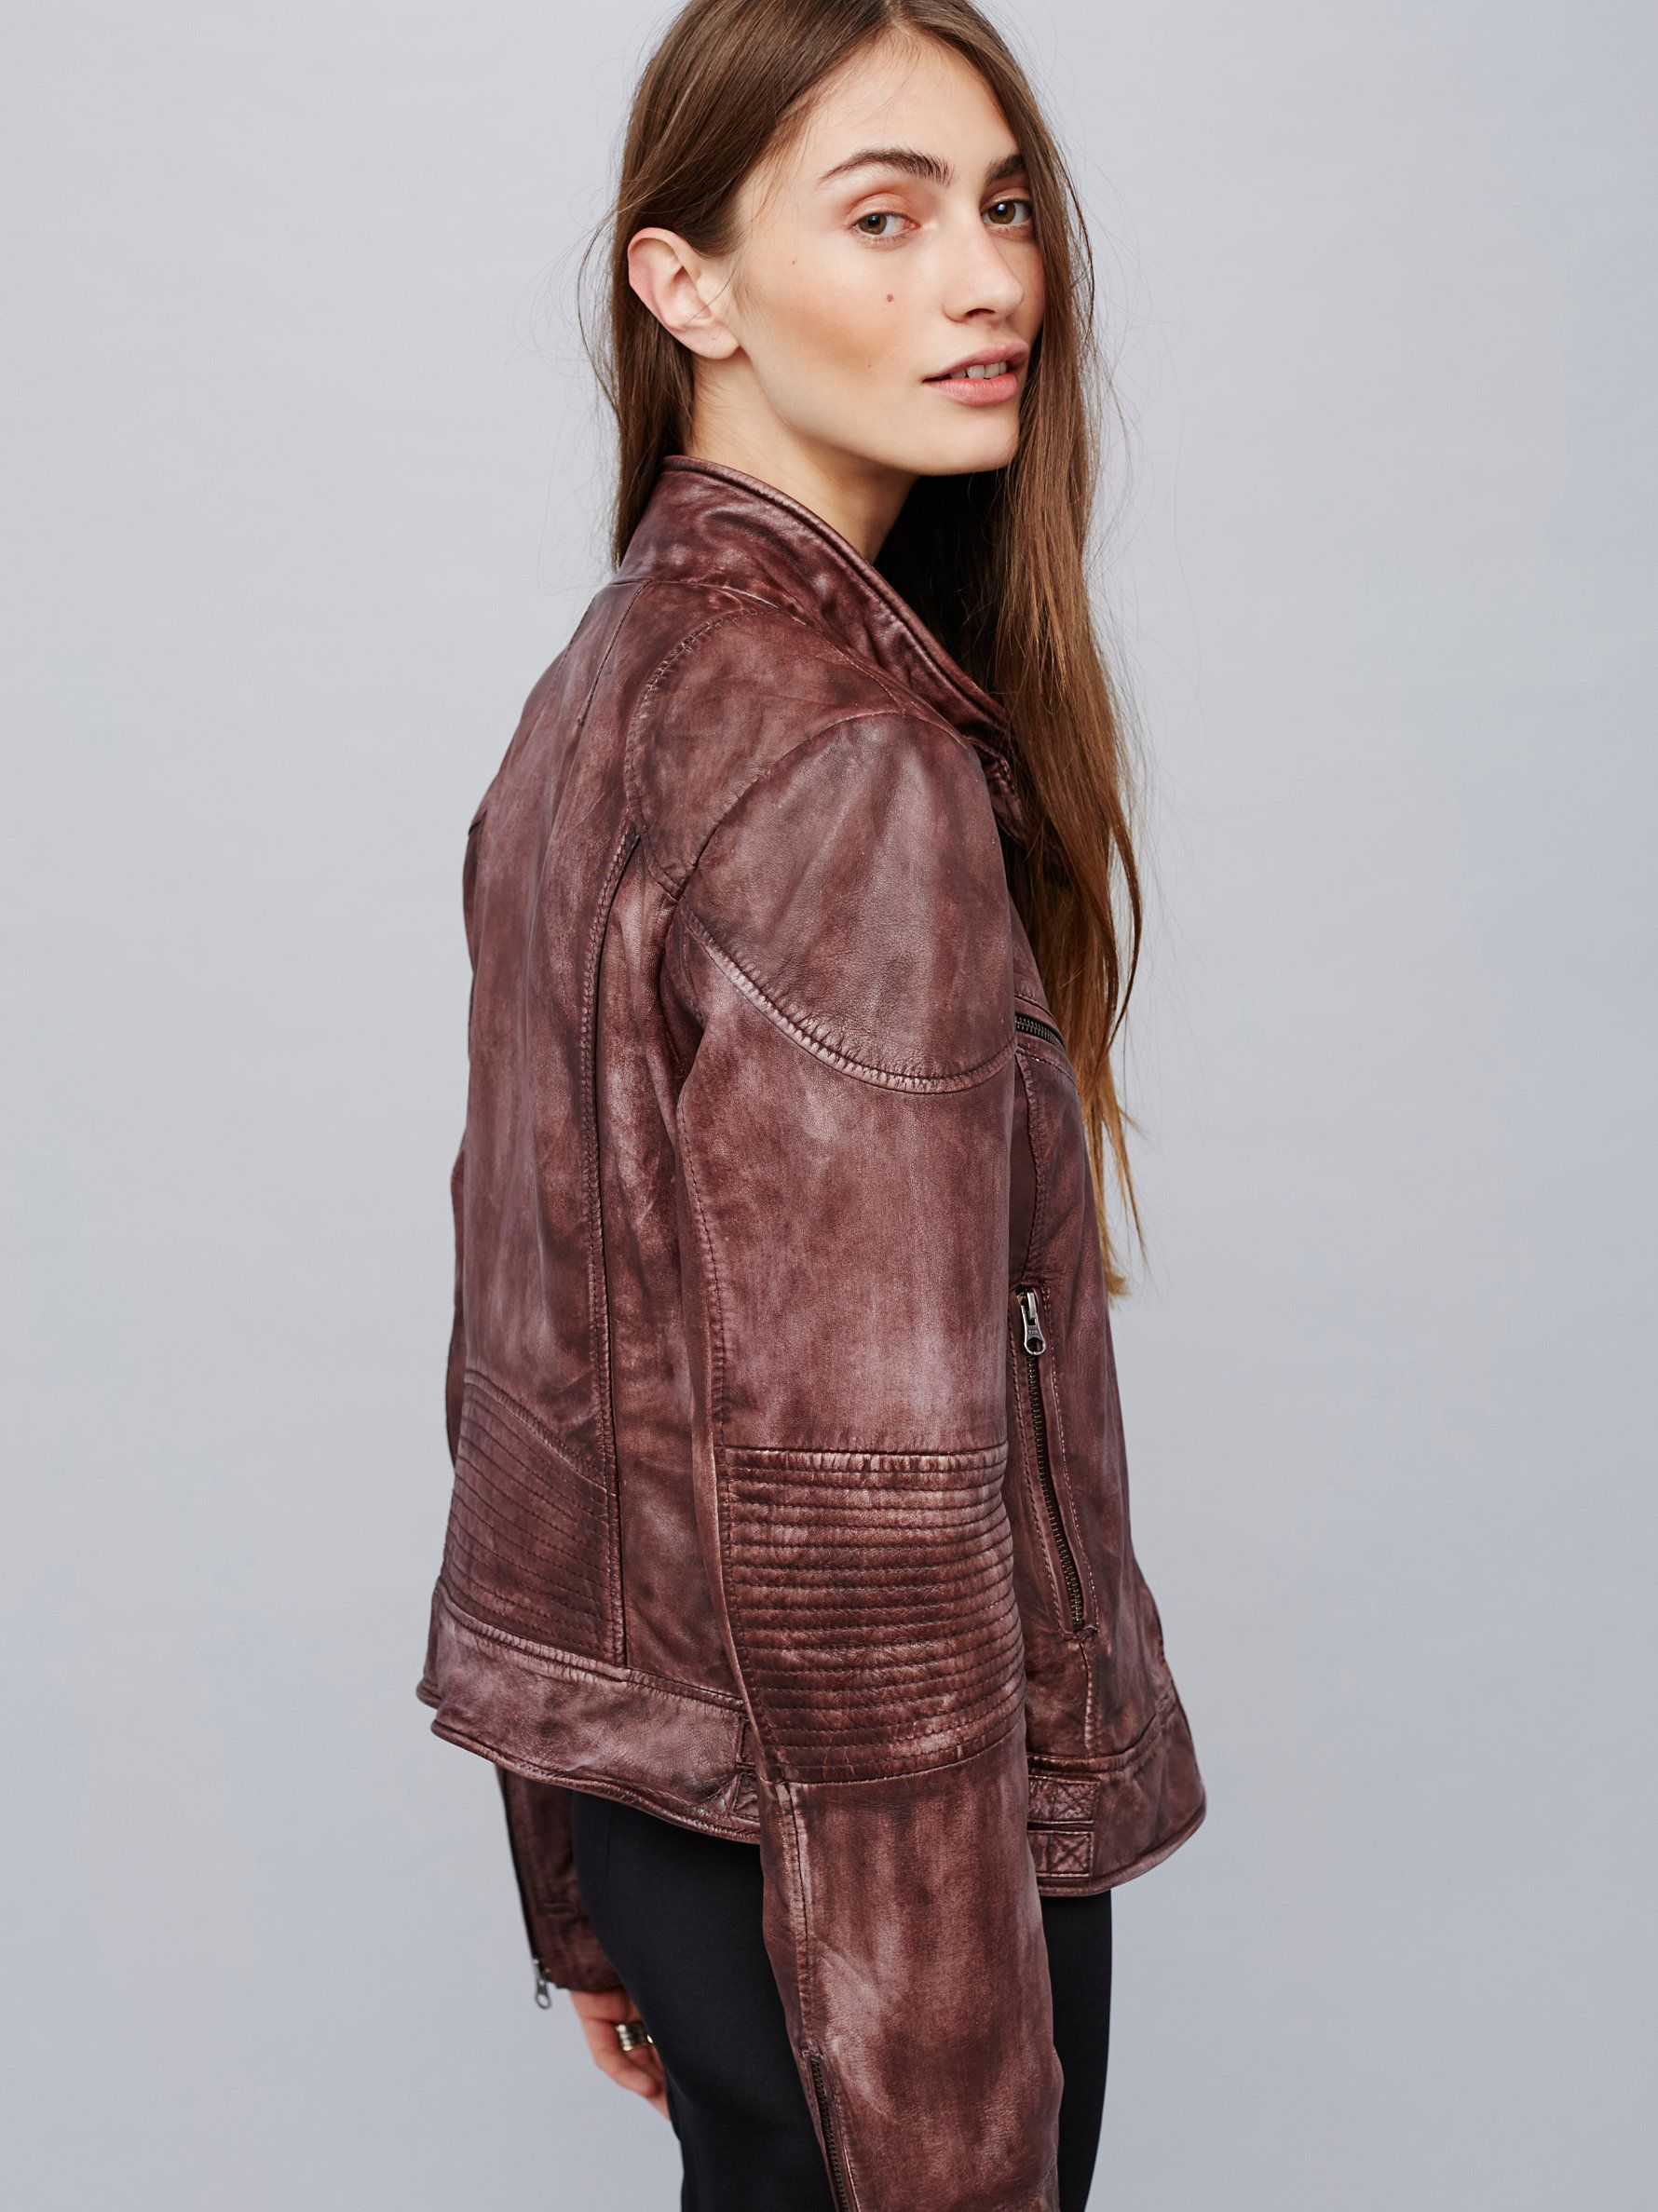 Fitted And Rugged Leather Jacket Rugged Leather Leather Jacket Jackets